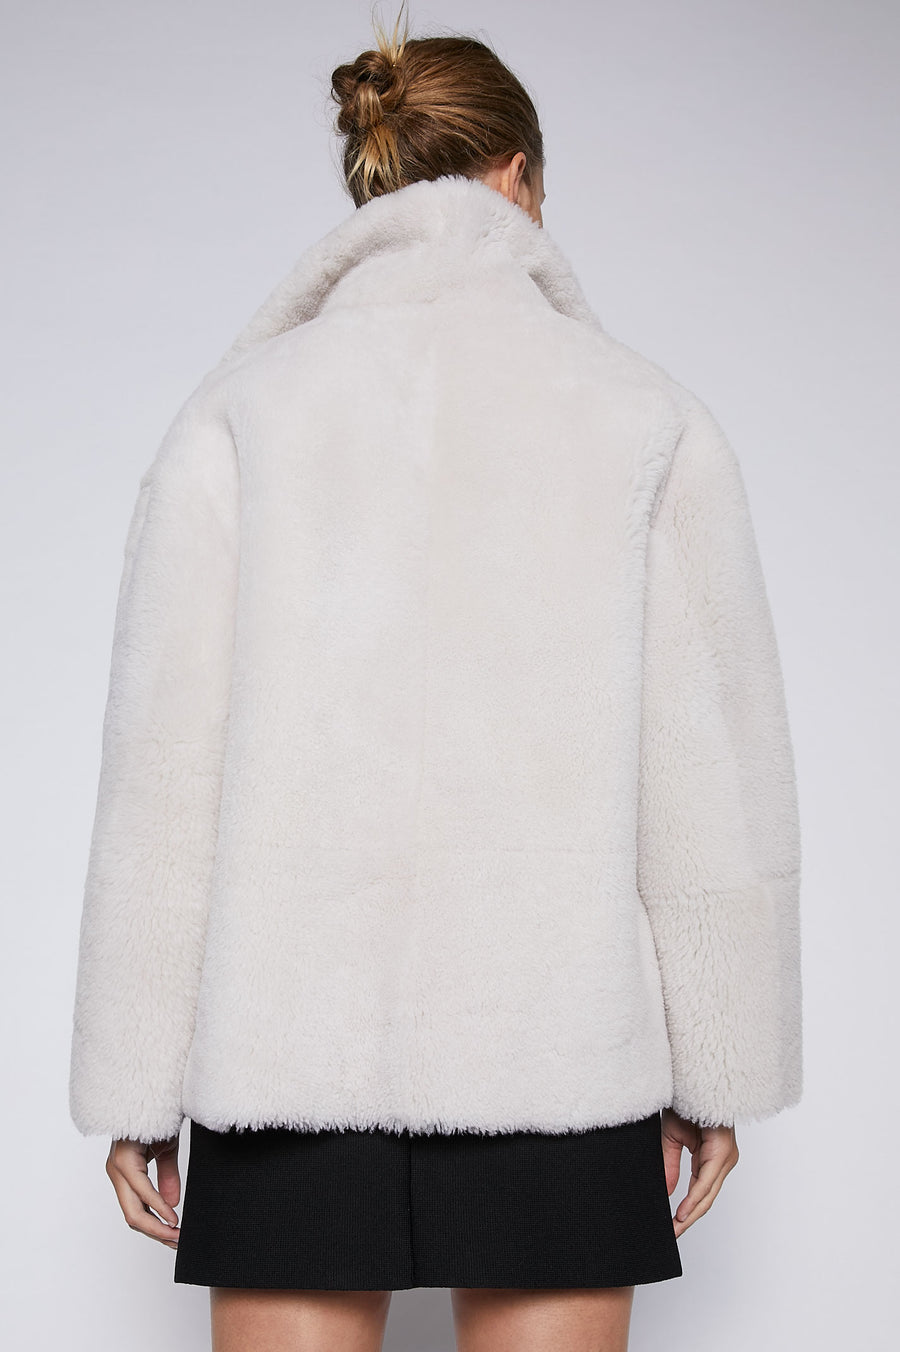 Crafted from luxurious shearling with 100% leather lining, the Shearling Jacket is this season's most coveted silhouette